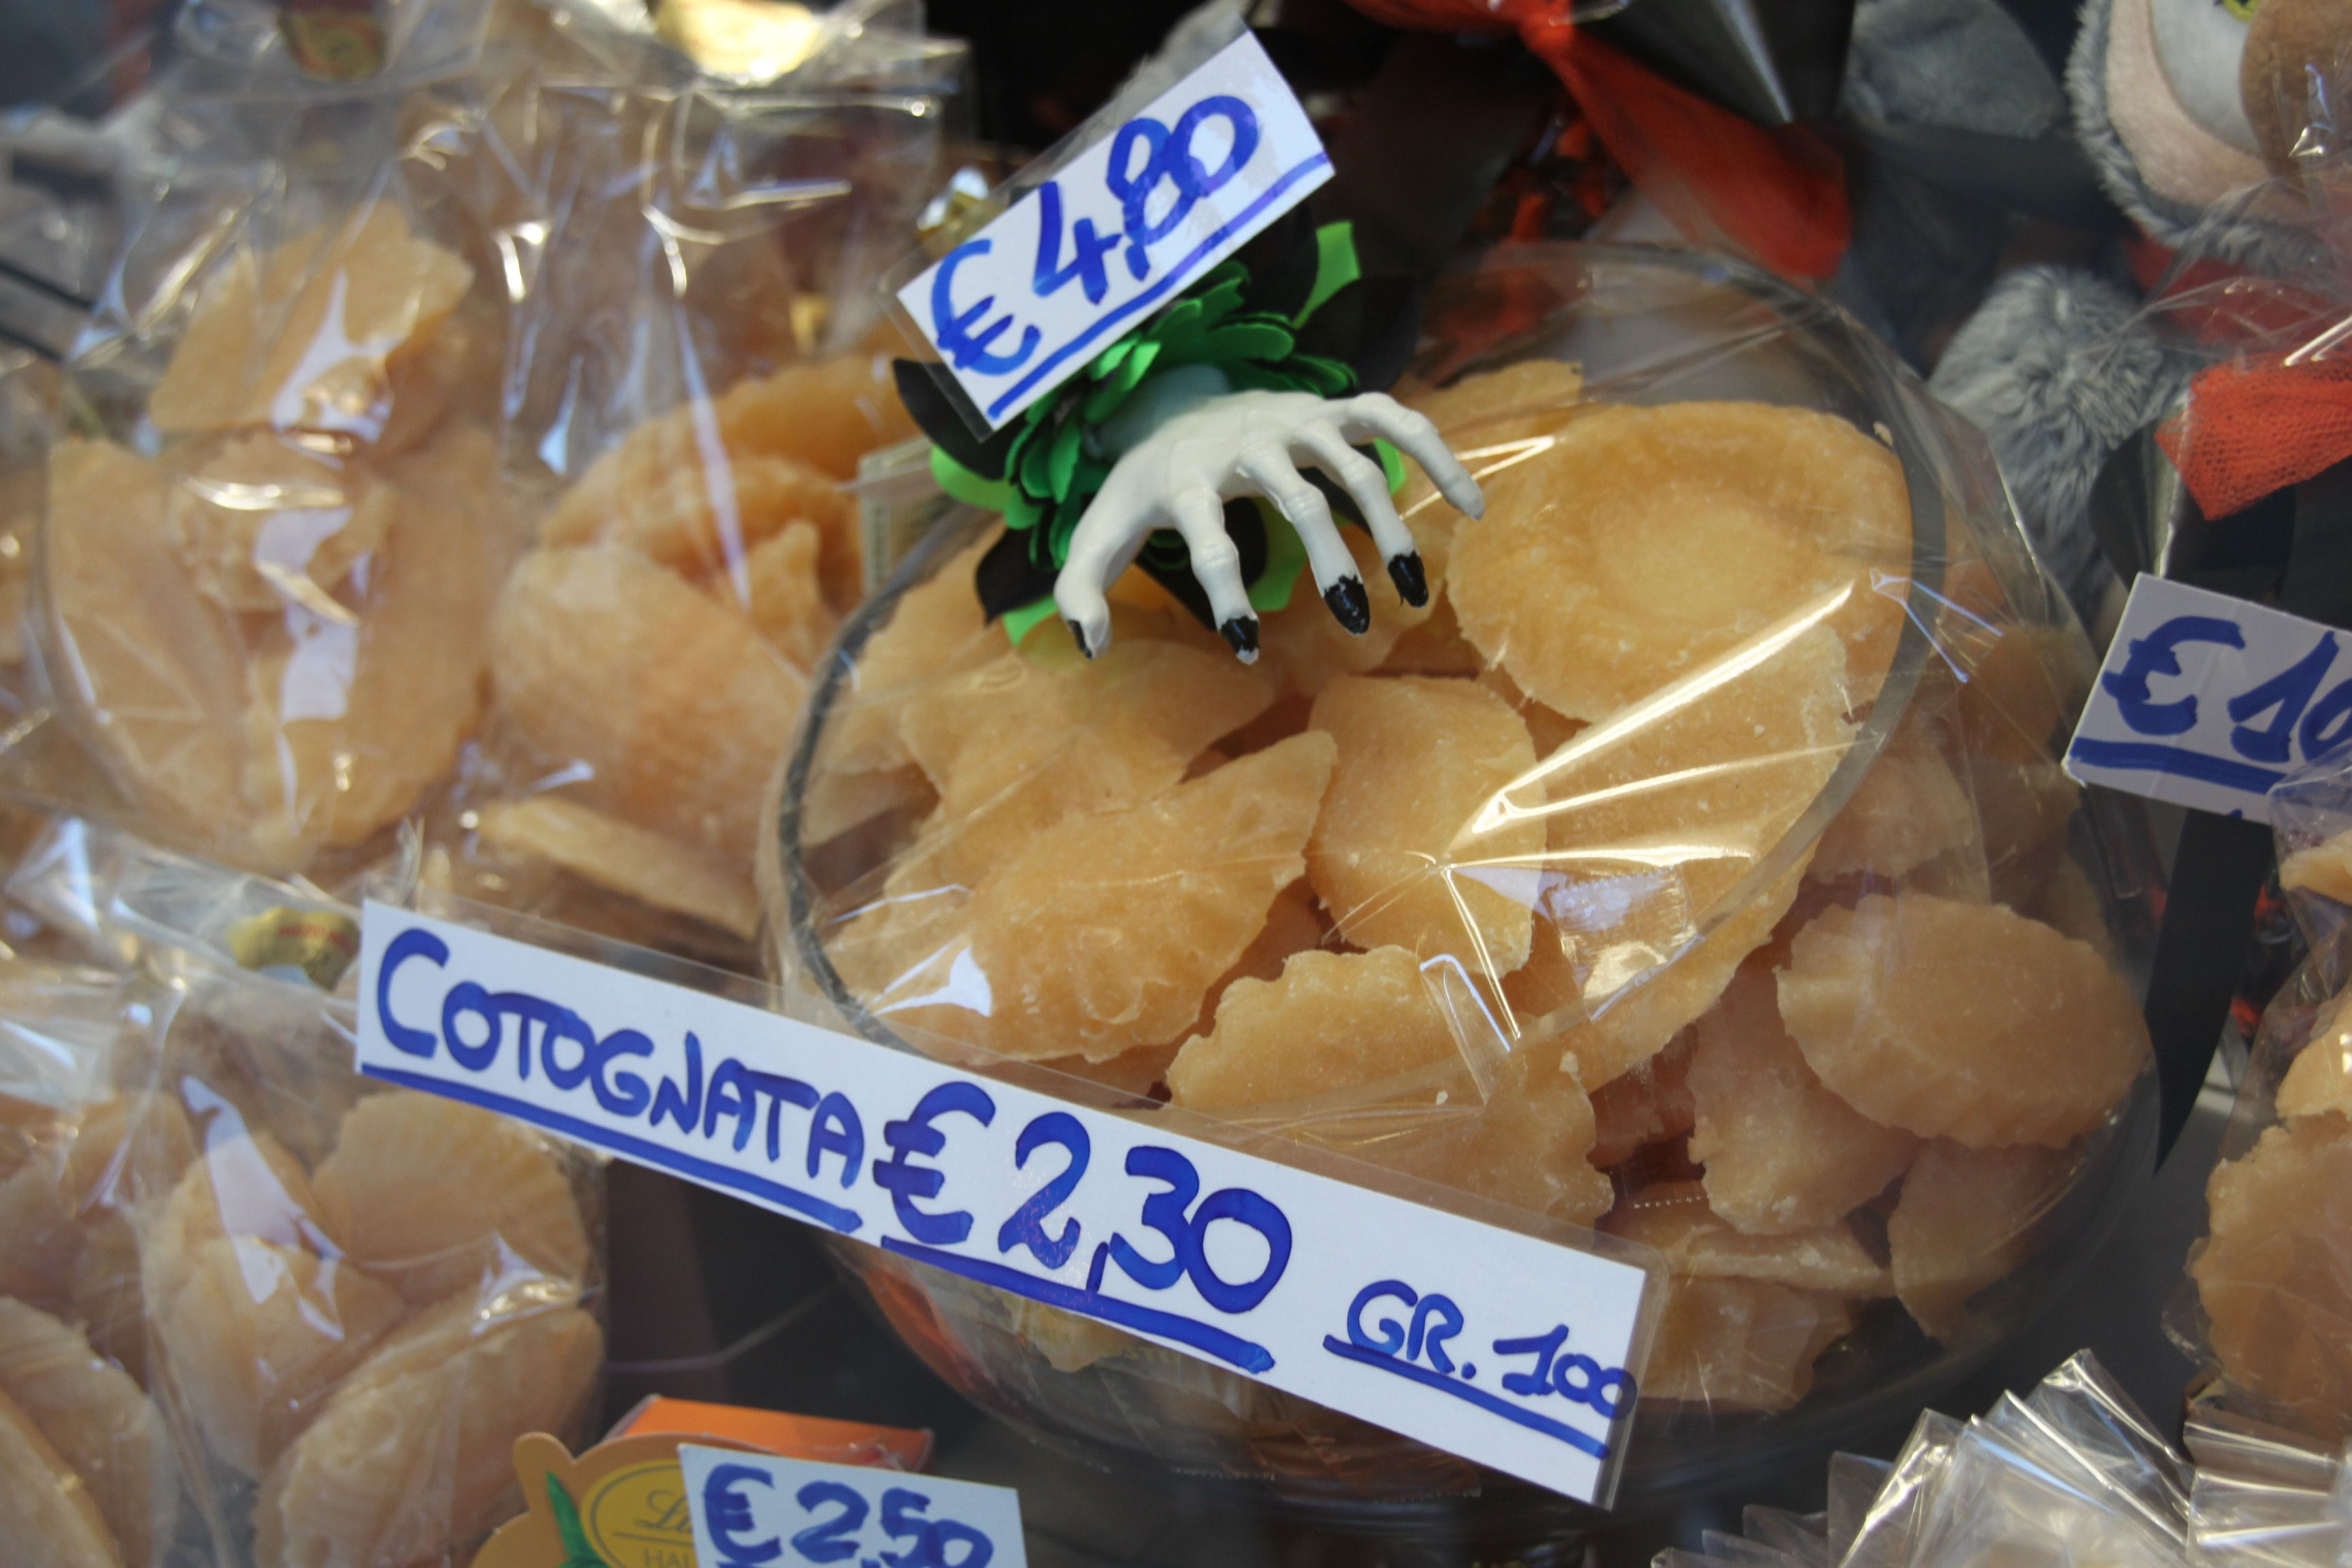 Yummy cotognata quince jelly sweets